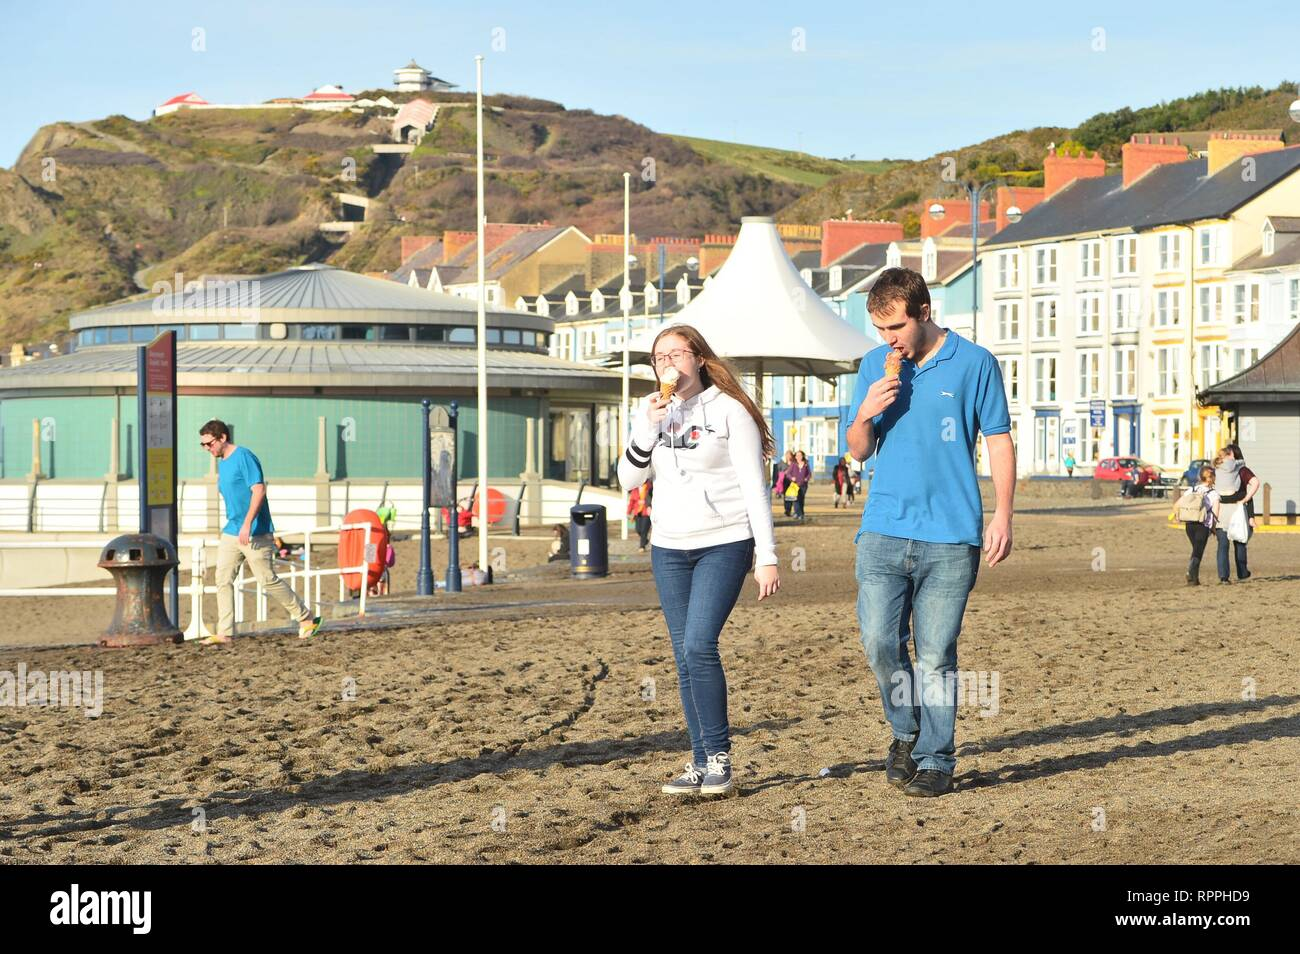 Aberystwyth Wales UK. Friday 22 Feb 2019 UK weather: Peopke enjoying the incredibly warm February sunshine in Aberystwyth on the west coast of Wales. The weather is forecast to remain fine for the next few days with the chance of record breaking temperatures in some places photo Credit: Keith Morris/Alamy Live News - Stock Image